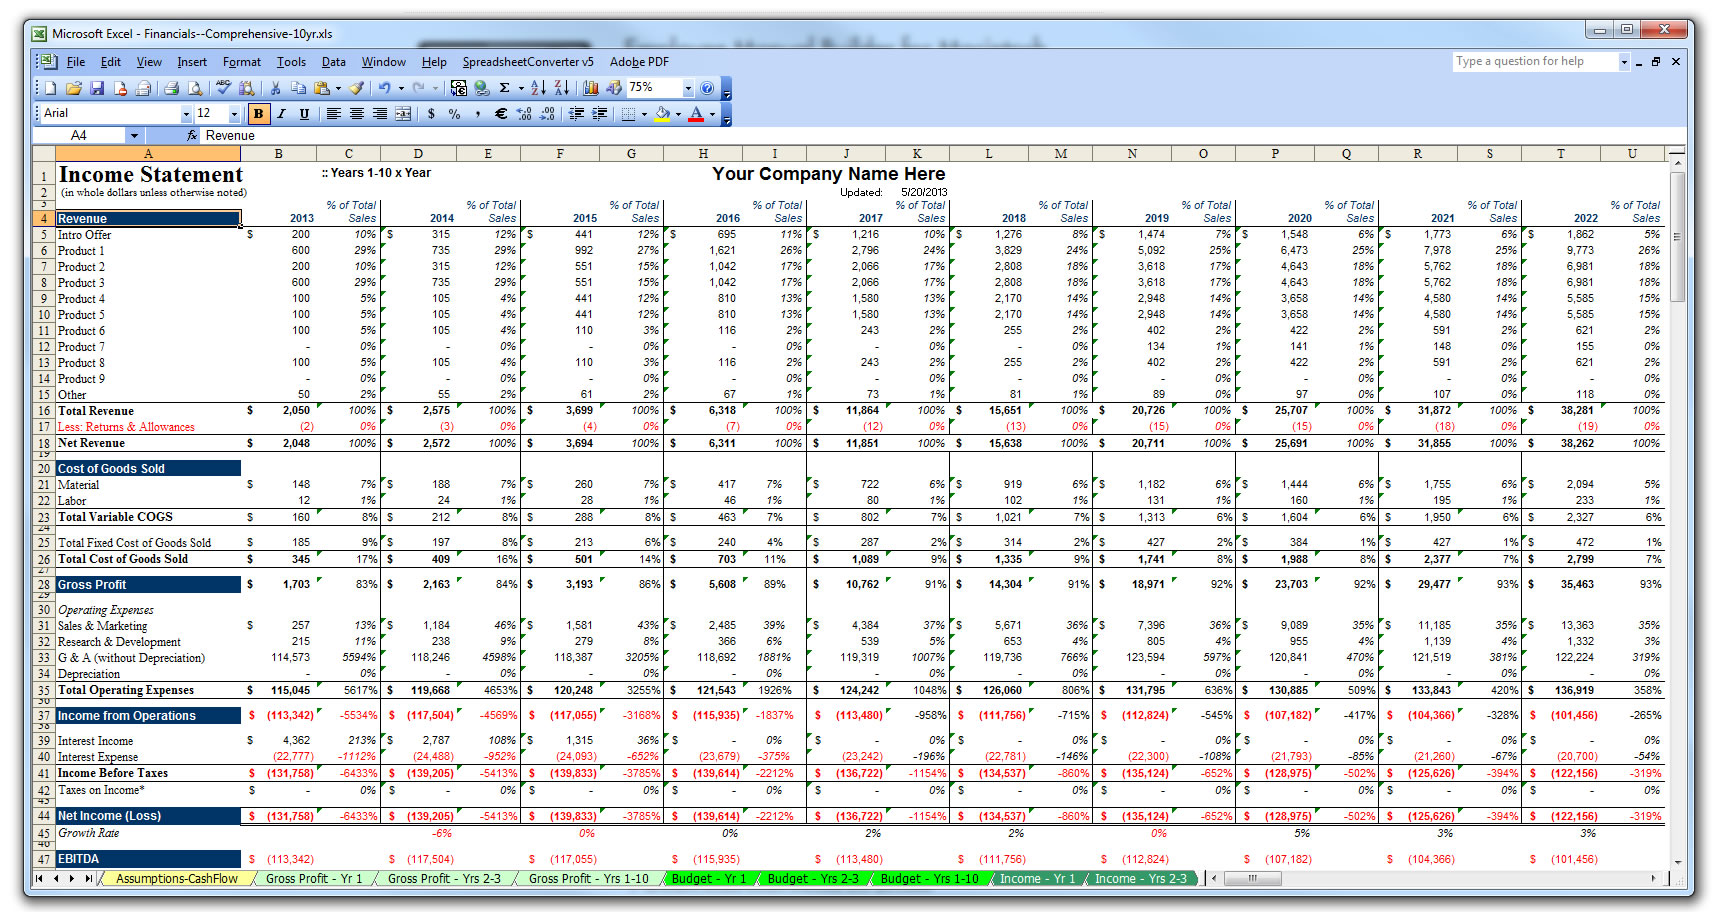 10 year business plan financial budget projection model in excel